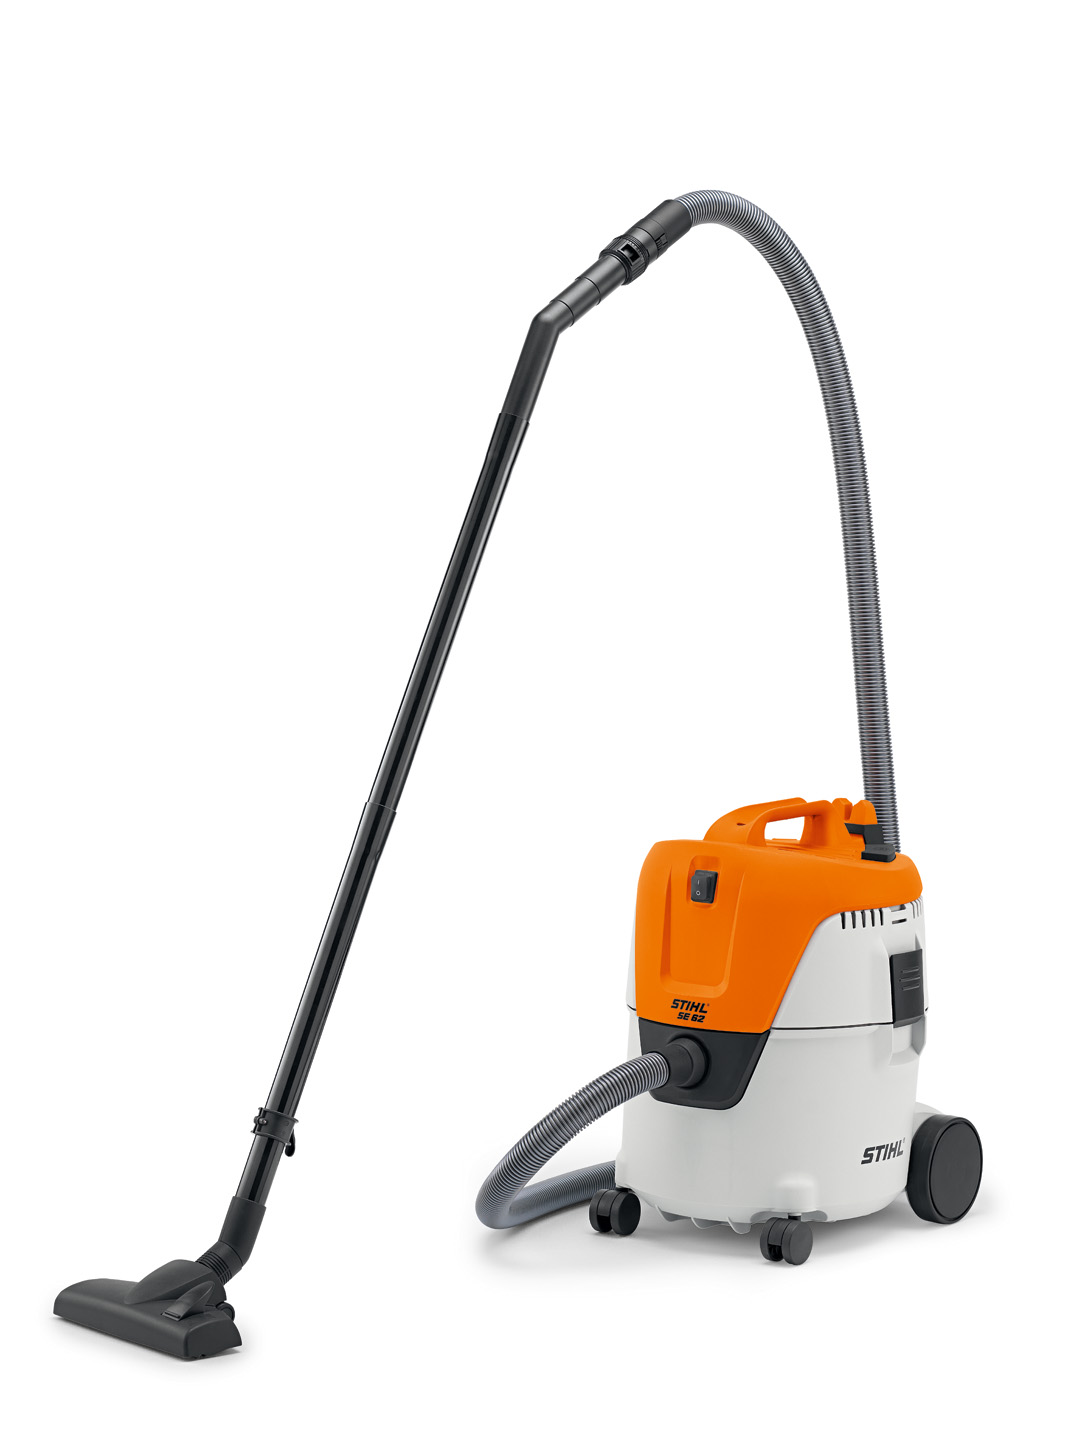 The SE 62 Industrial Hoover